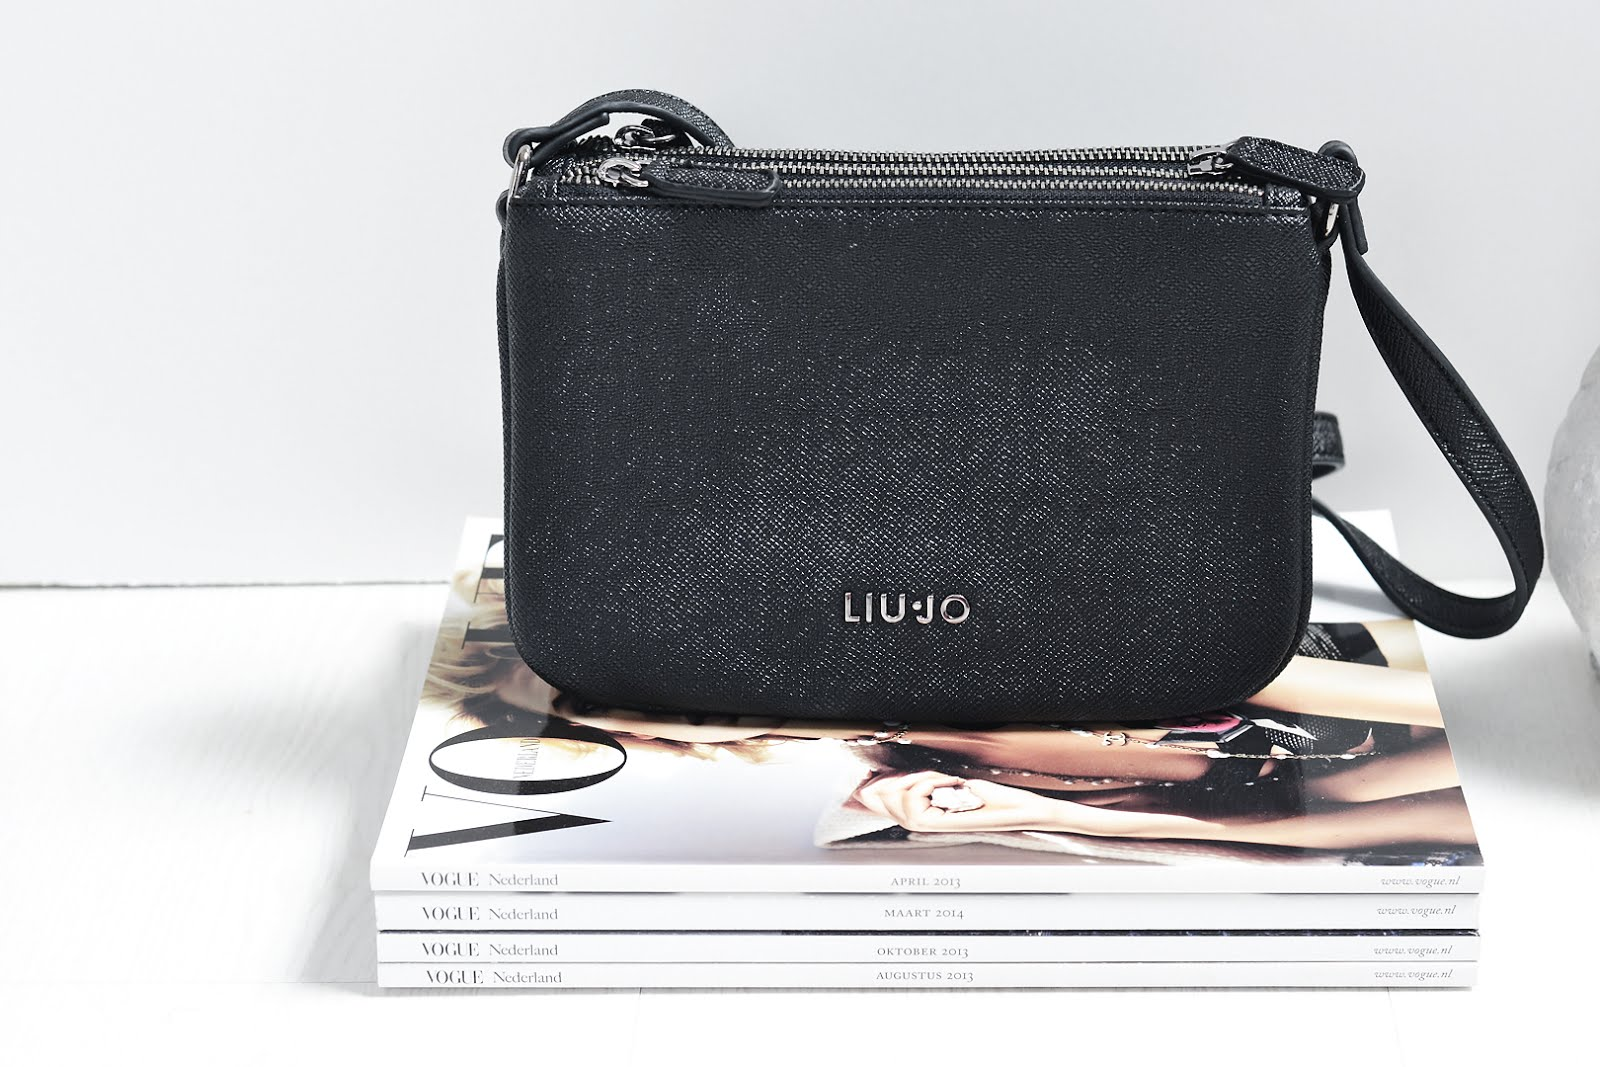 Liu-jo anna bag, black, trio bag, duifhuizen, tassen & koffers, trends, belgian blogger, belgische fashion blogger